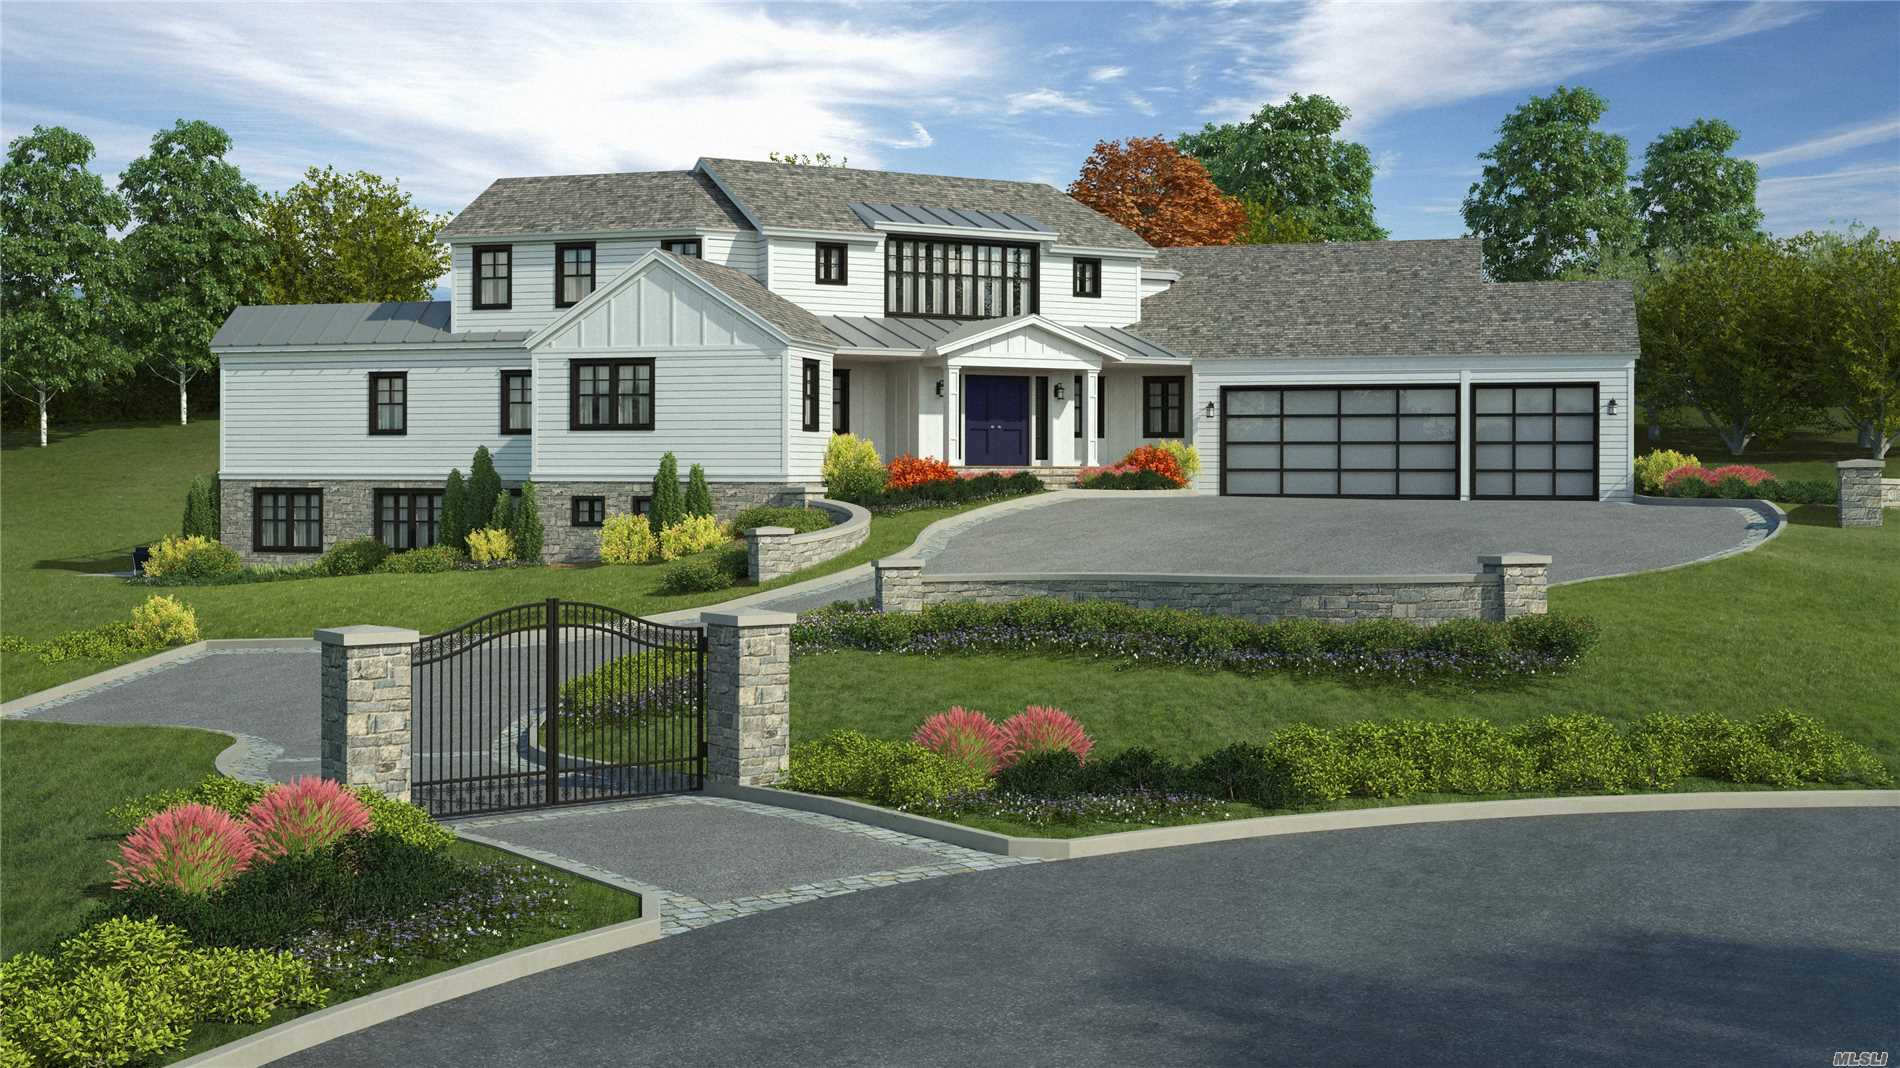 Spectacular Modern Farm Ranch New Construction By Renowned Hampton's Builder.Private Setting With A Convenient Location, This Home Has It All! High-End Finishes & Materials, Open Modern Floor Plan, 22Ft High Great Room With Walls Of Glass, 10 Foot High Ceilings Throughout Including The 3000 Sqft Lower Level, Oversized 3 Car Garage For Today's Xtra Long Suvs, 4 Bedrooms Plus A Grand Master Suite! Still Time To Customize This Dream Home! Interior Pictures For Workmanship Purposes Only-Features May Vary.